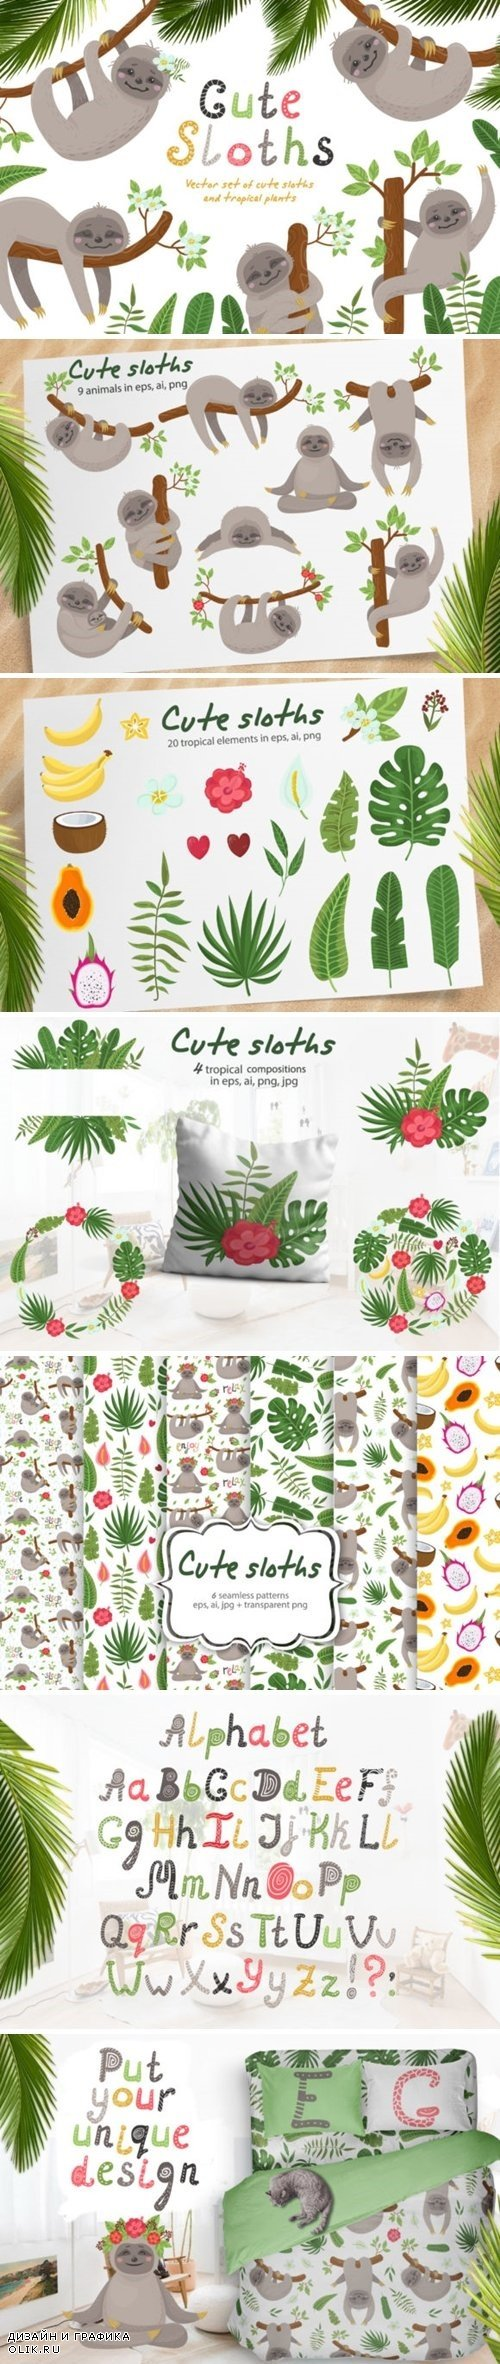 Cute sloths and tropical plants - 3427699